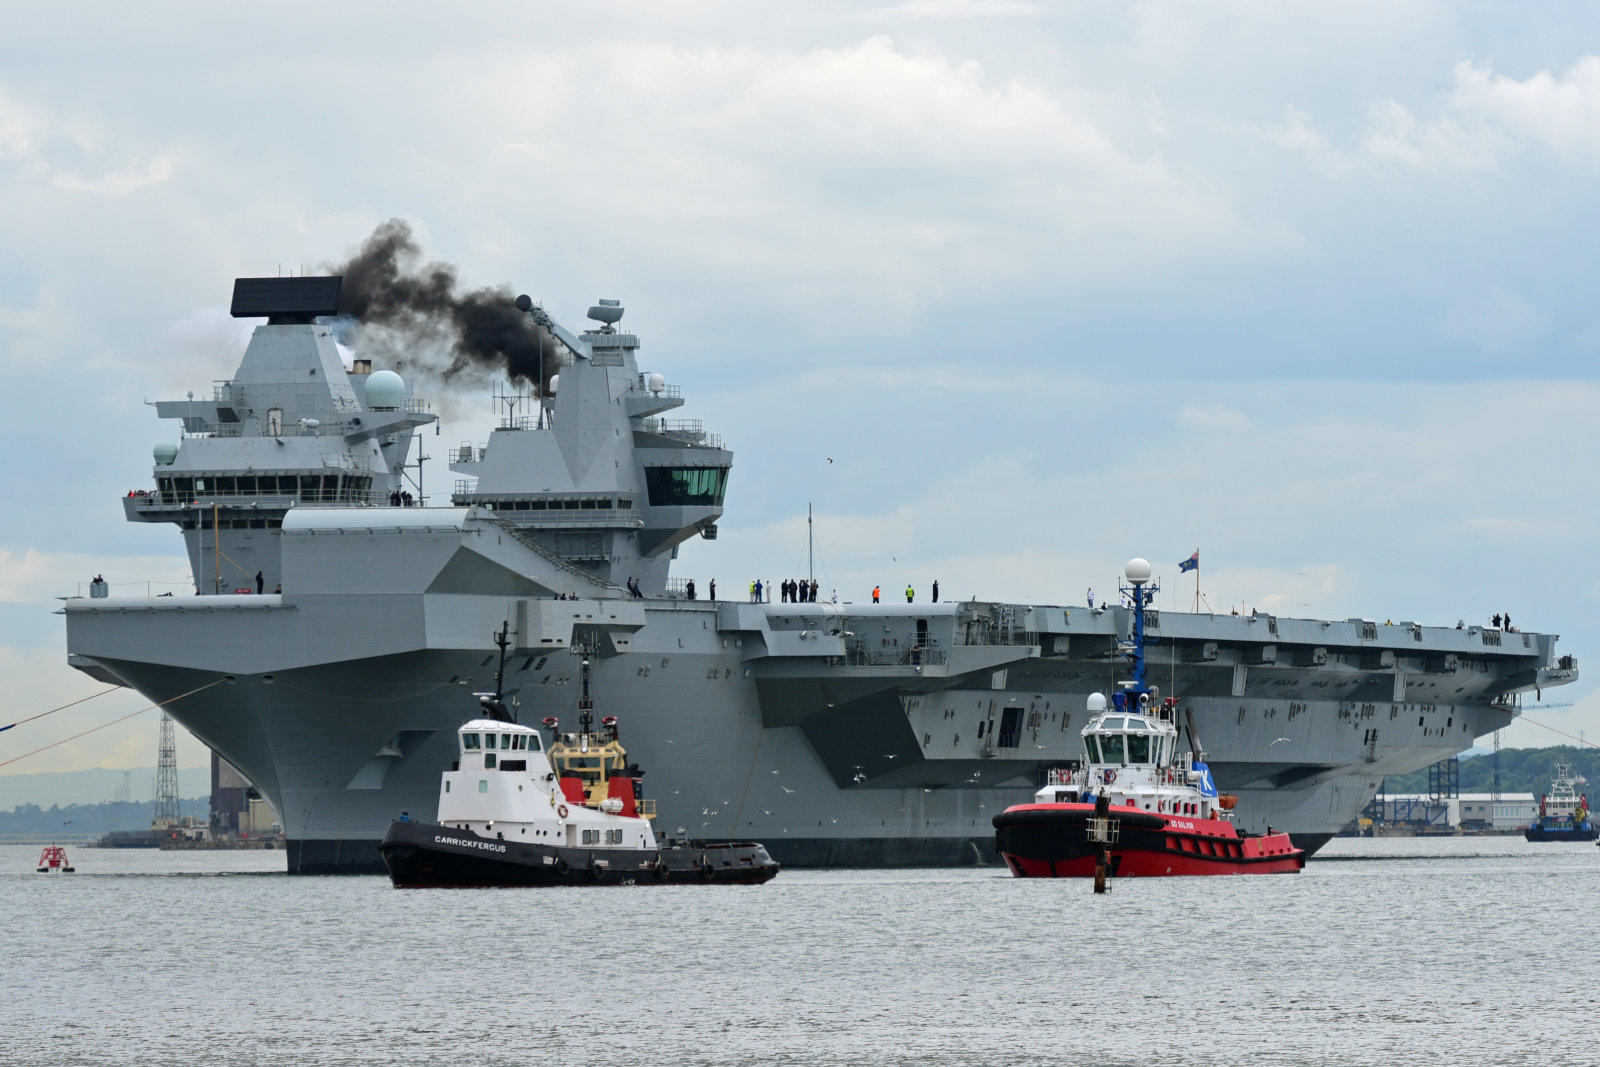 ROSYTH, SCOTLAND - JUNE 26: The aircraft carrier  HMS Queen Elizabeth makes smoke as she leaves Rosyth dockyard to begin sea trials before entering service with the fleet, on June 26, 2017 in Rosyth, Scotland. HMS Queen Elizabeth and her sister ship HMS Prince of Wales, which is still under construction at Rosyth, are the largest warships ever built for the Royal Navy (Photo by Ken Jack - Corbis/Corbis via Getty Images)